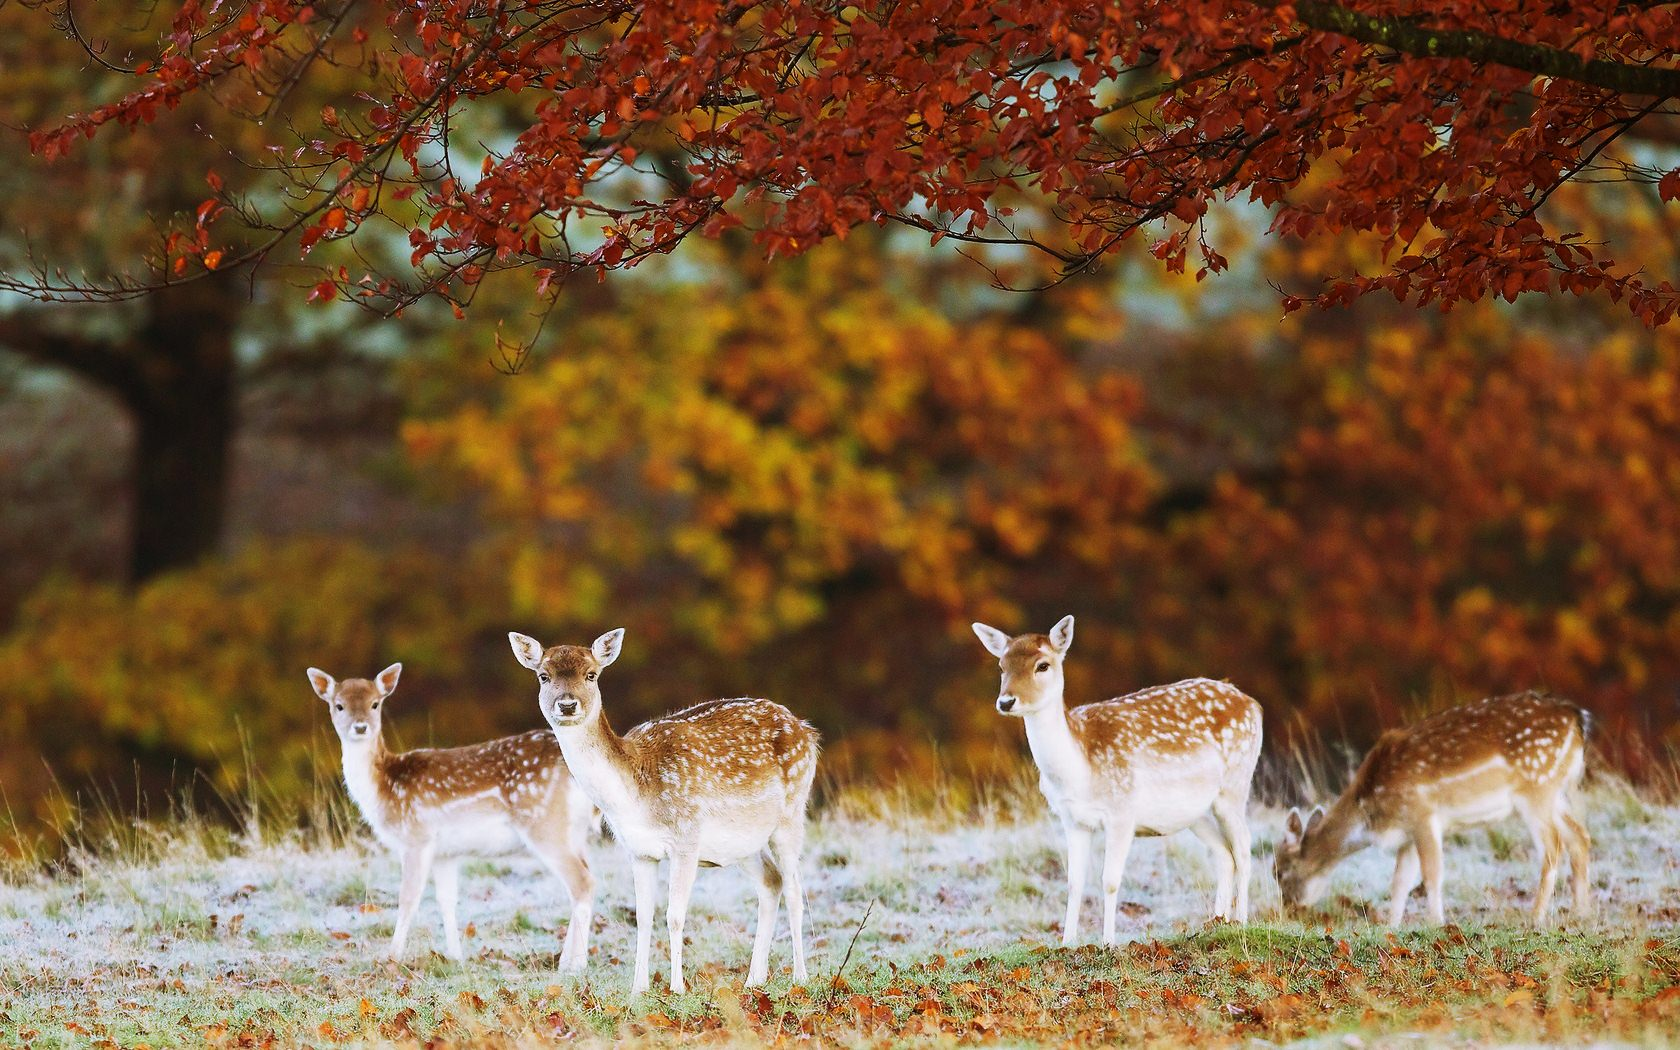 Fall Fox Wallpaper Animals In Autumn Inotternews Com